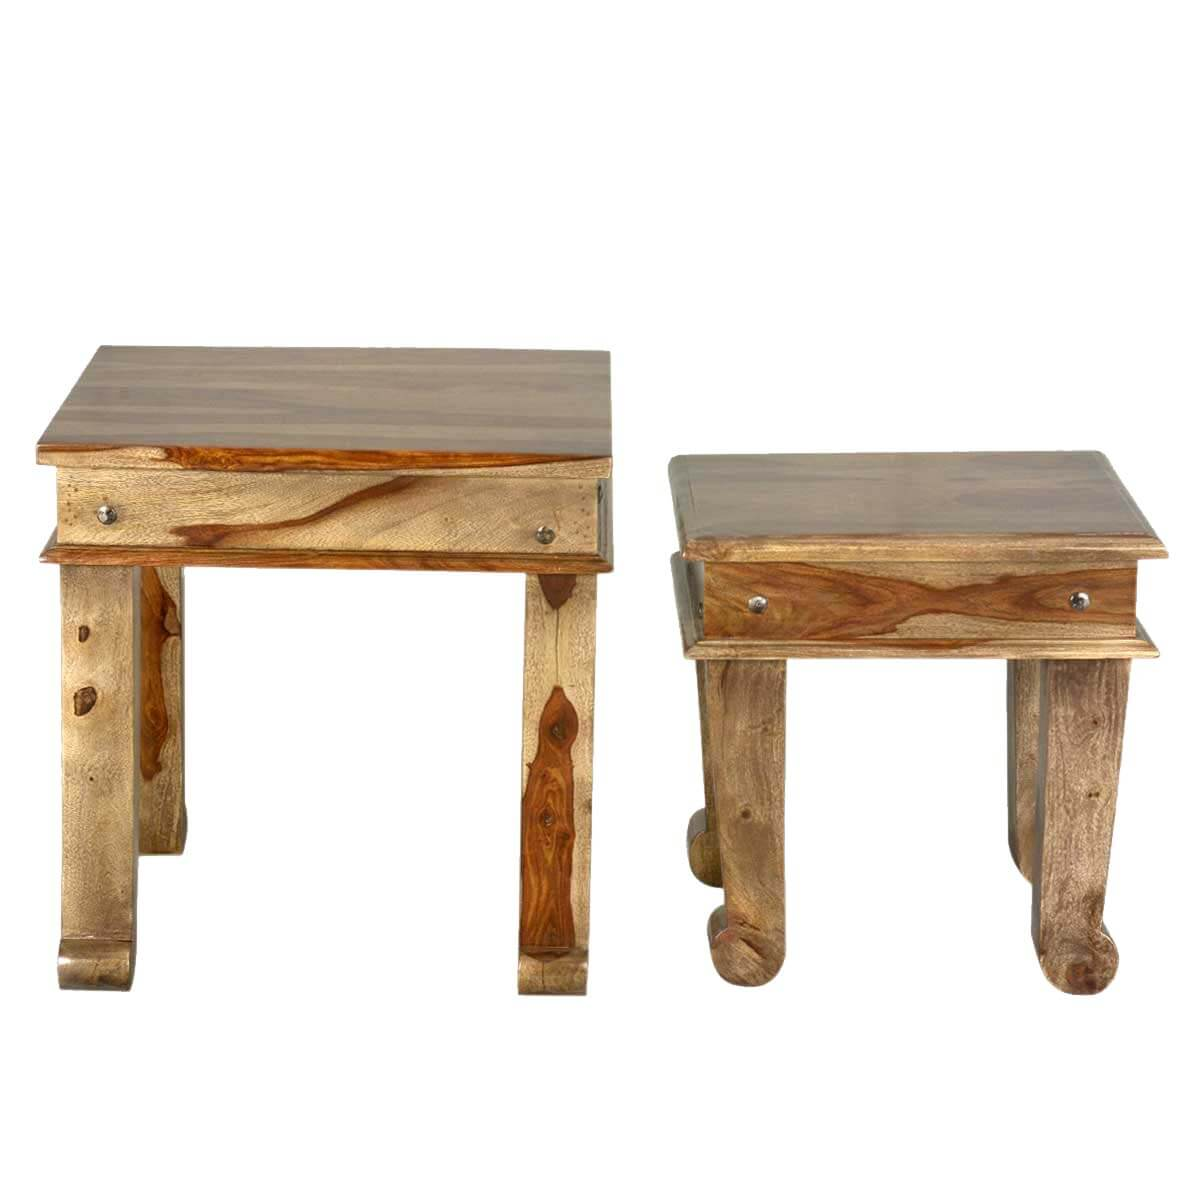 Dallas Ranch Indian Rosewood Club Foot Square End Table Set of 2